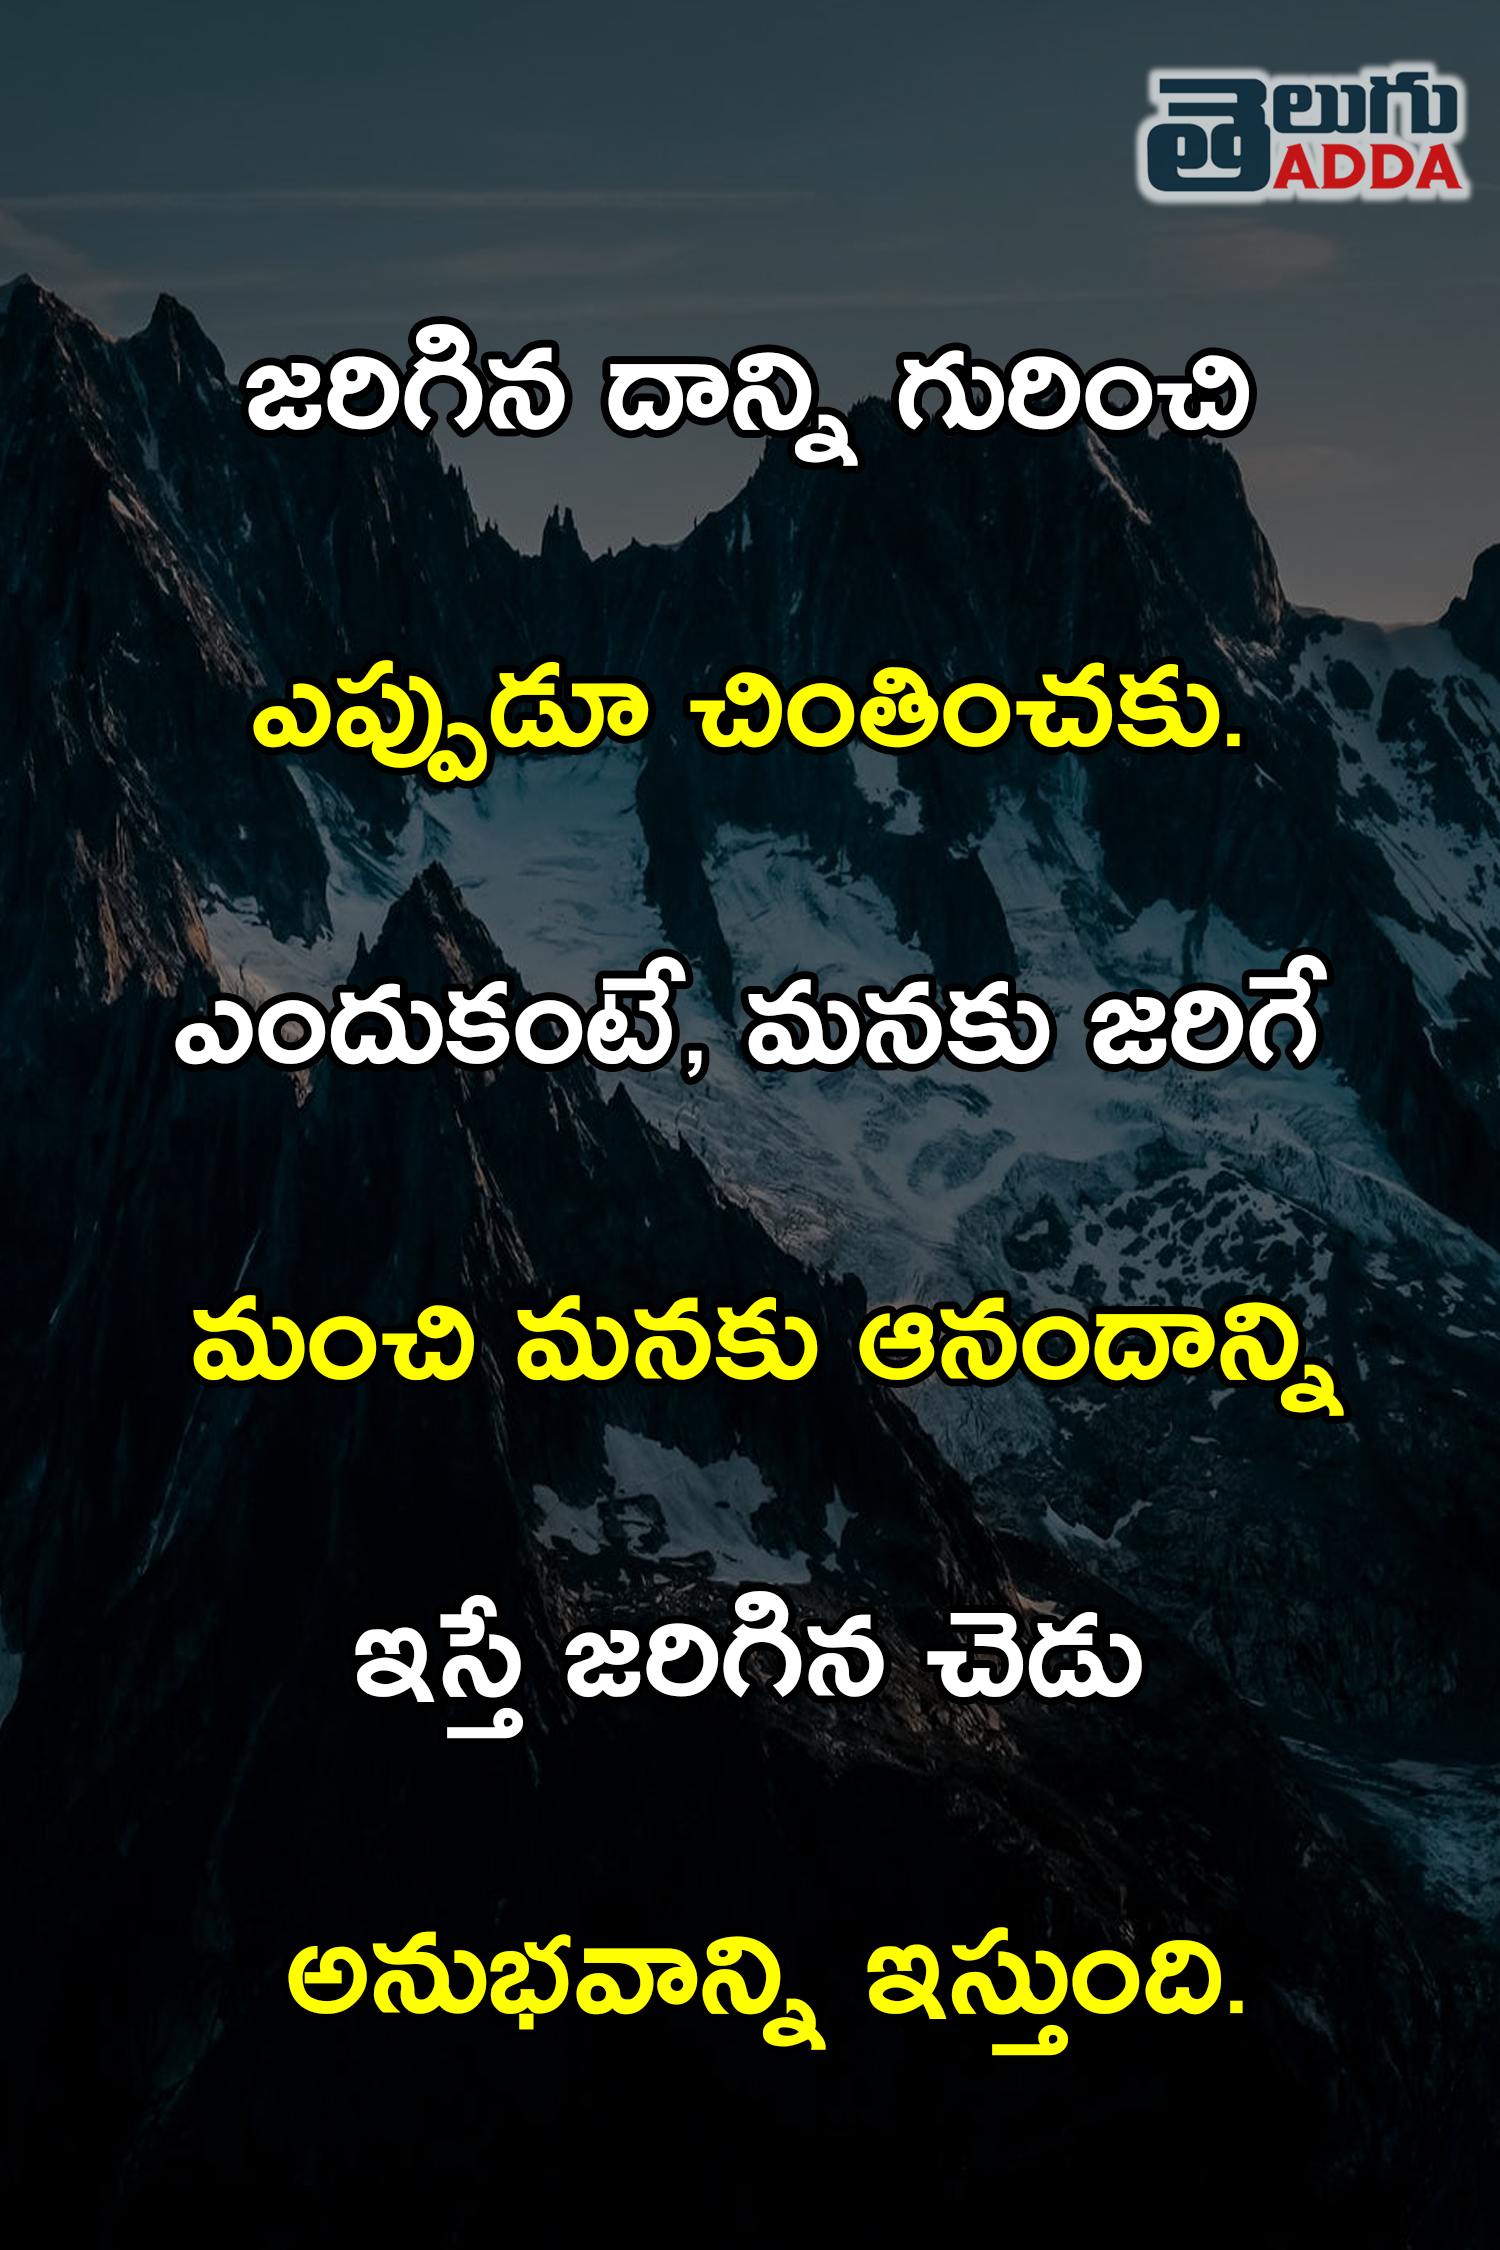 Telugu Inspirational Quotes About Life And Success